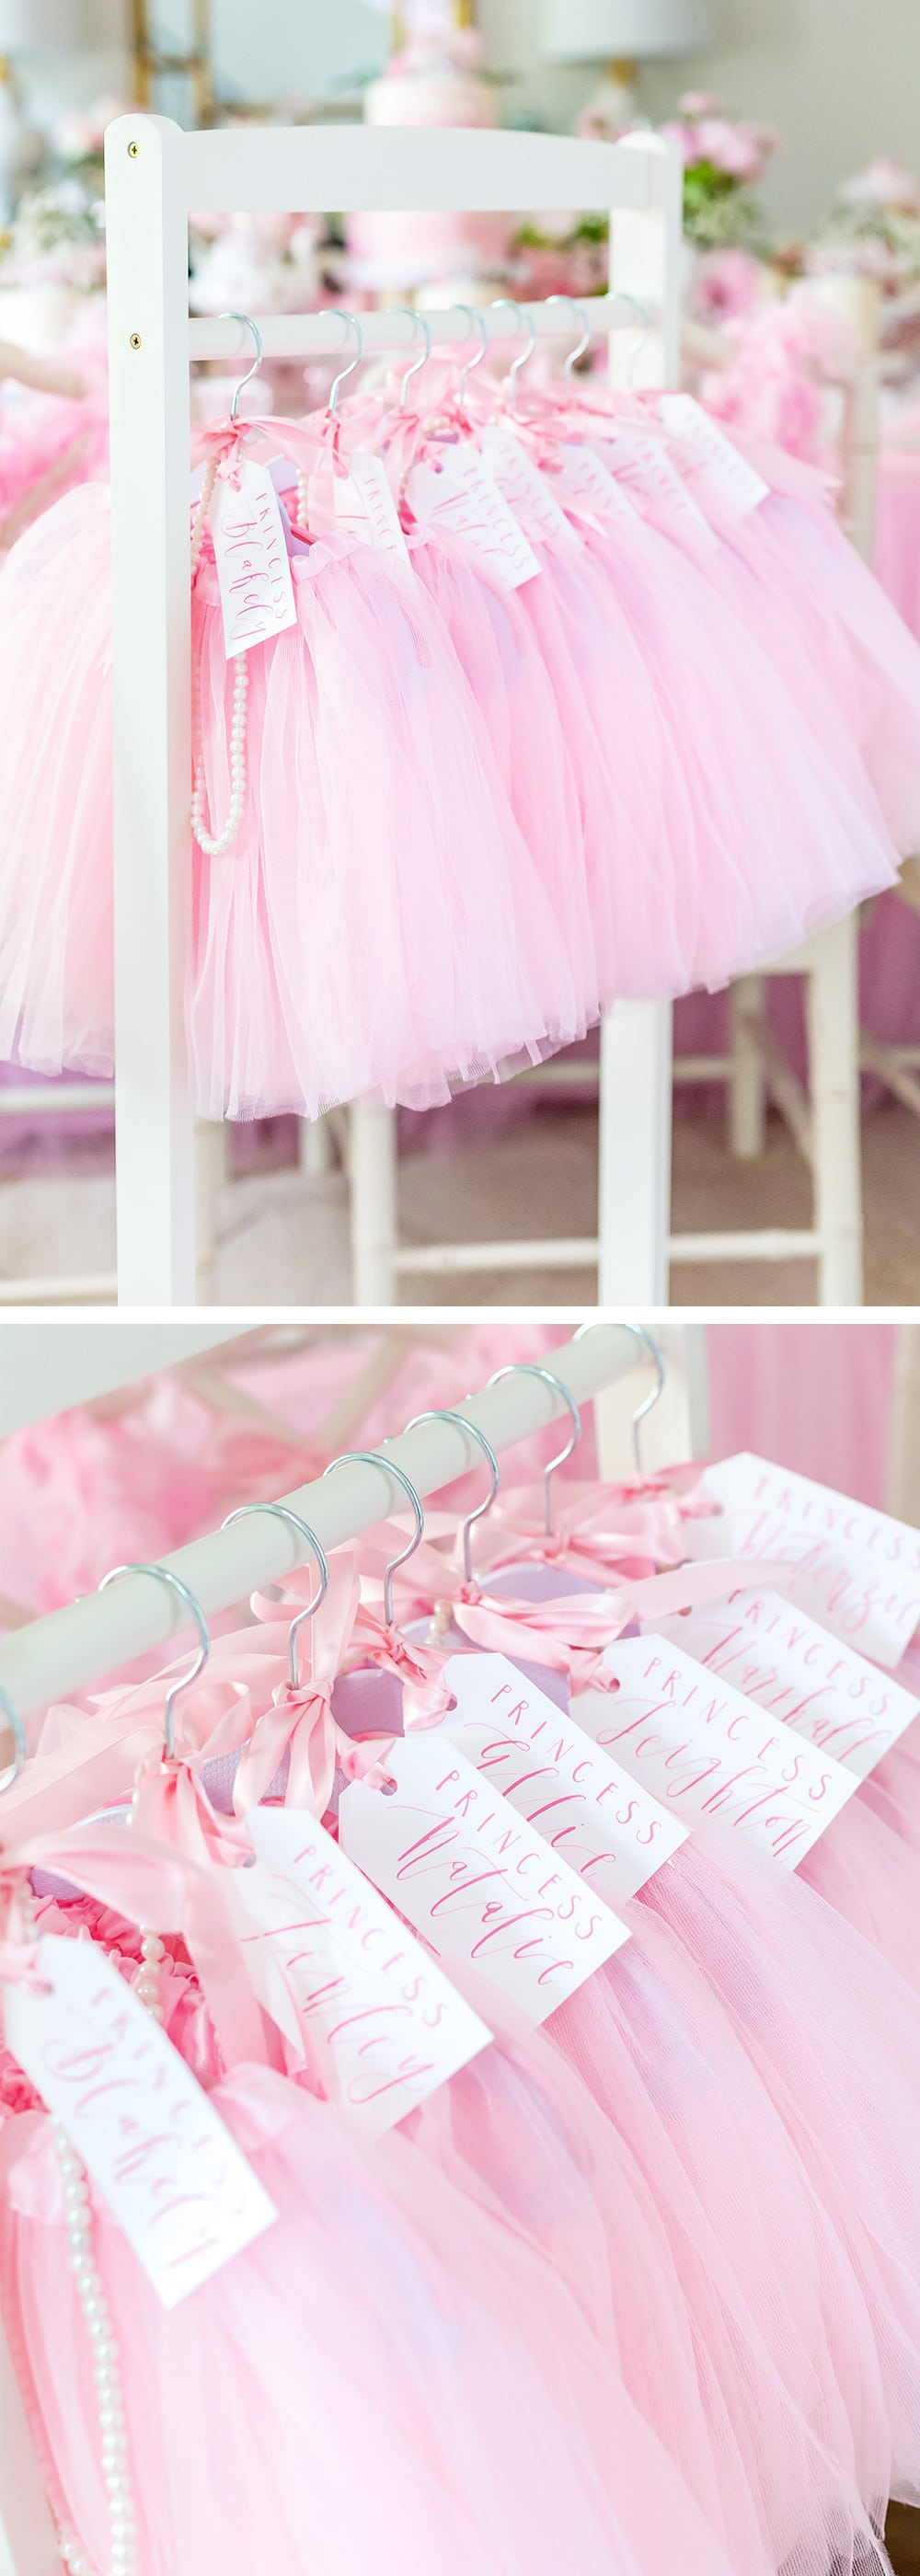 Princess Party Tutus